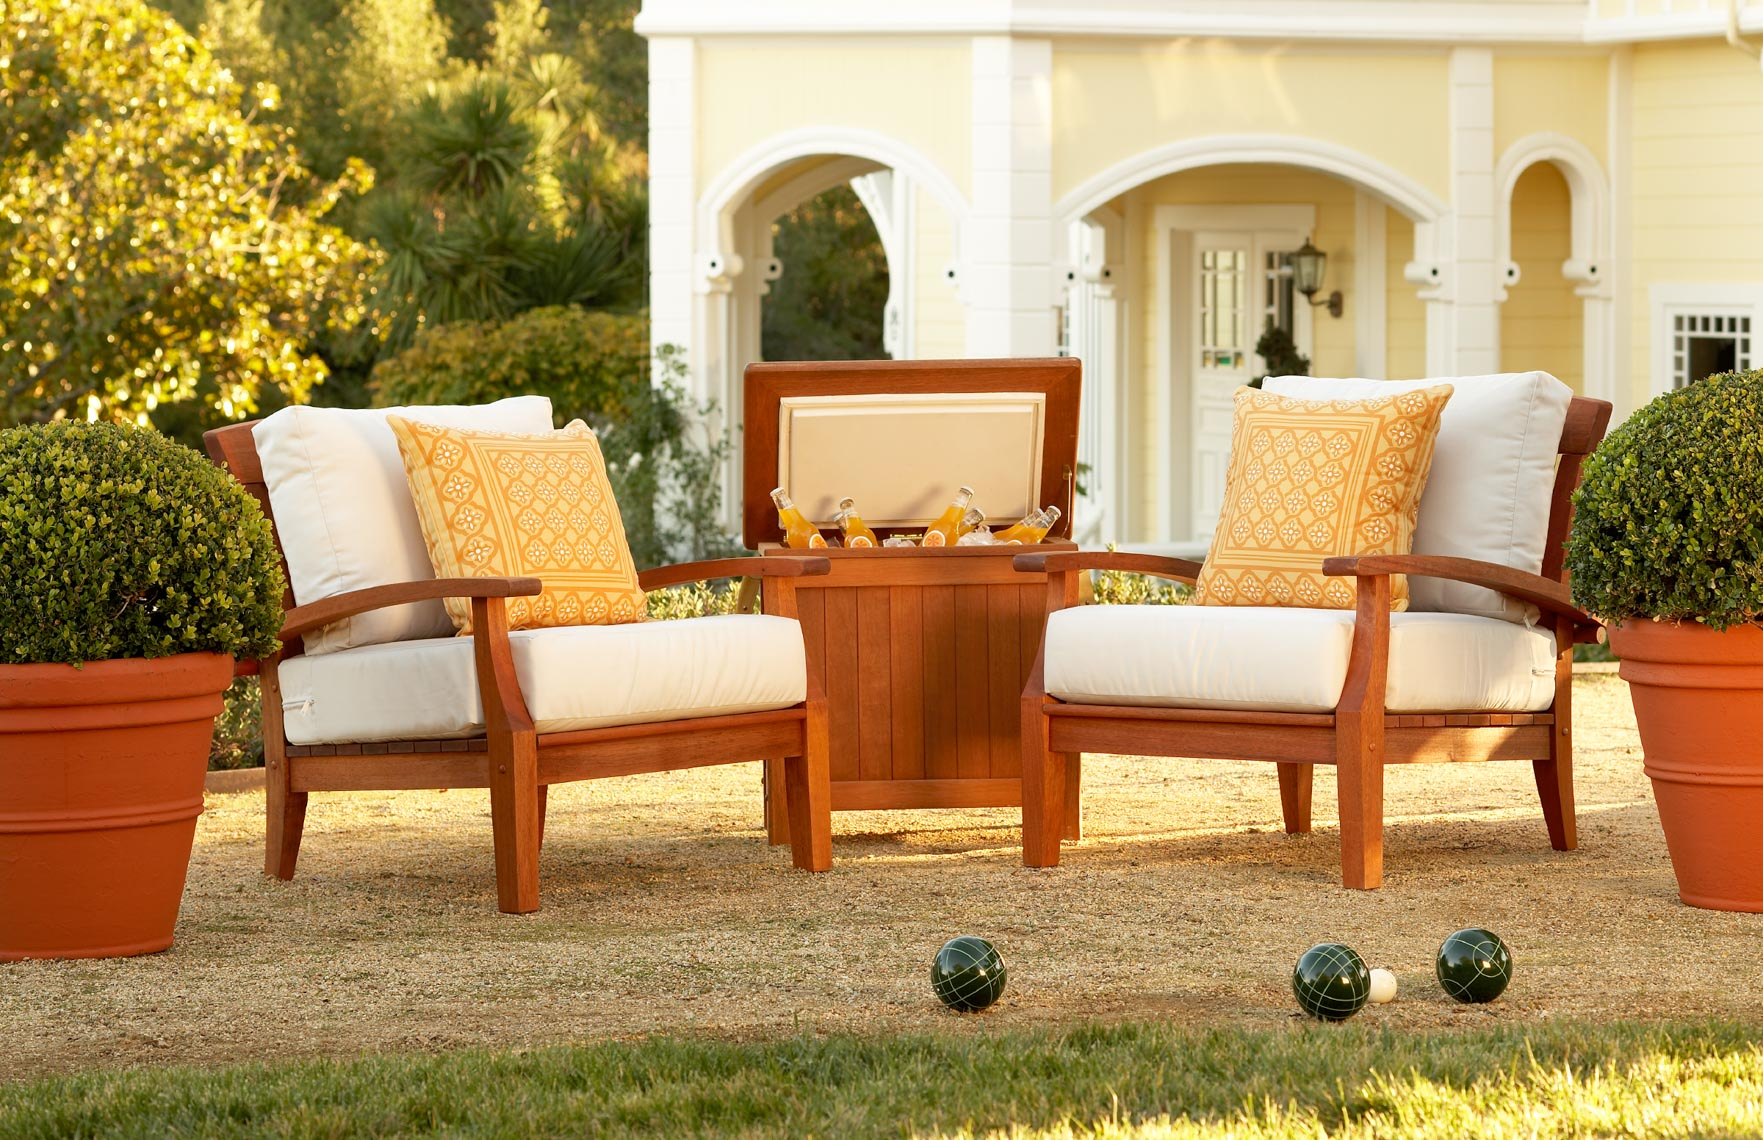 Teak chairs and cooler by green grass